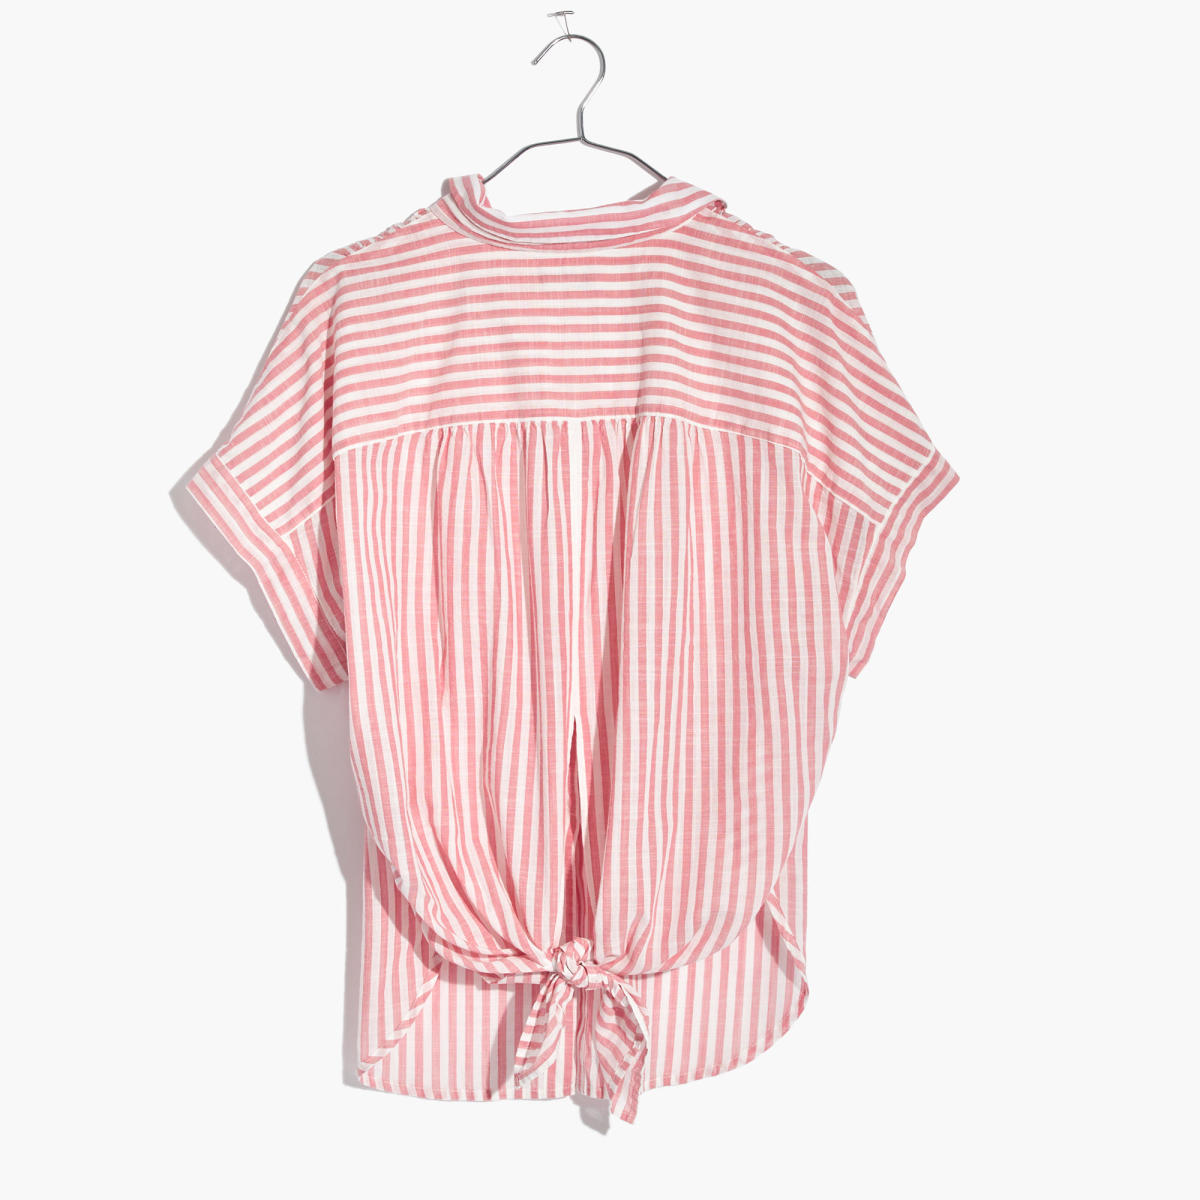 0a46818557 The Rosy Striped Shirt That Alyssa Wants to Buy in Multiples ...